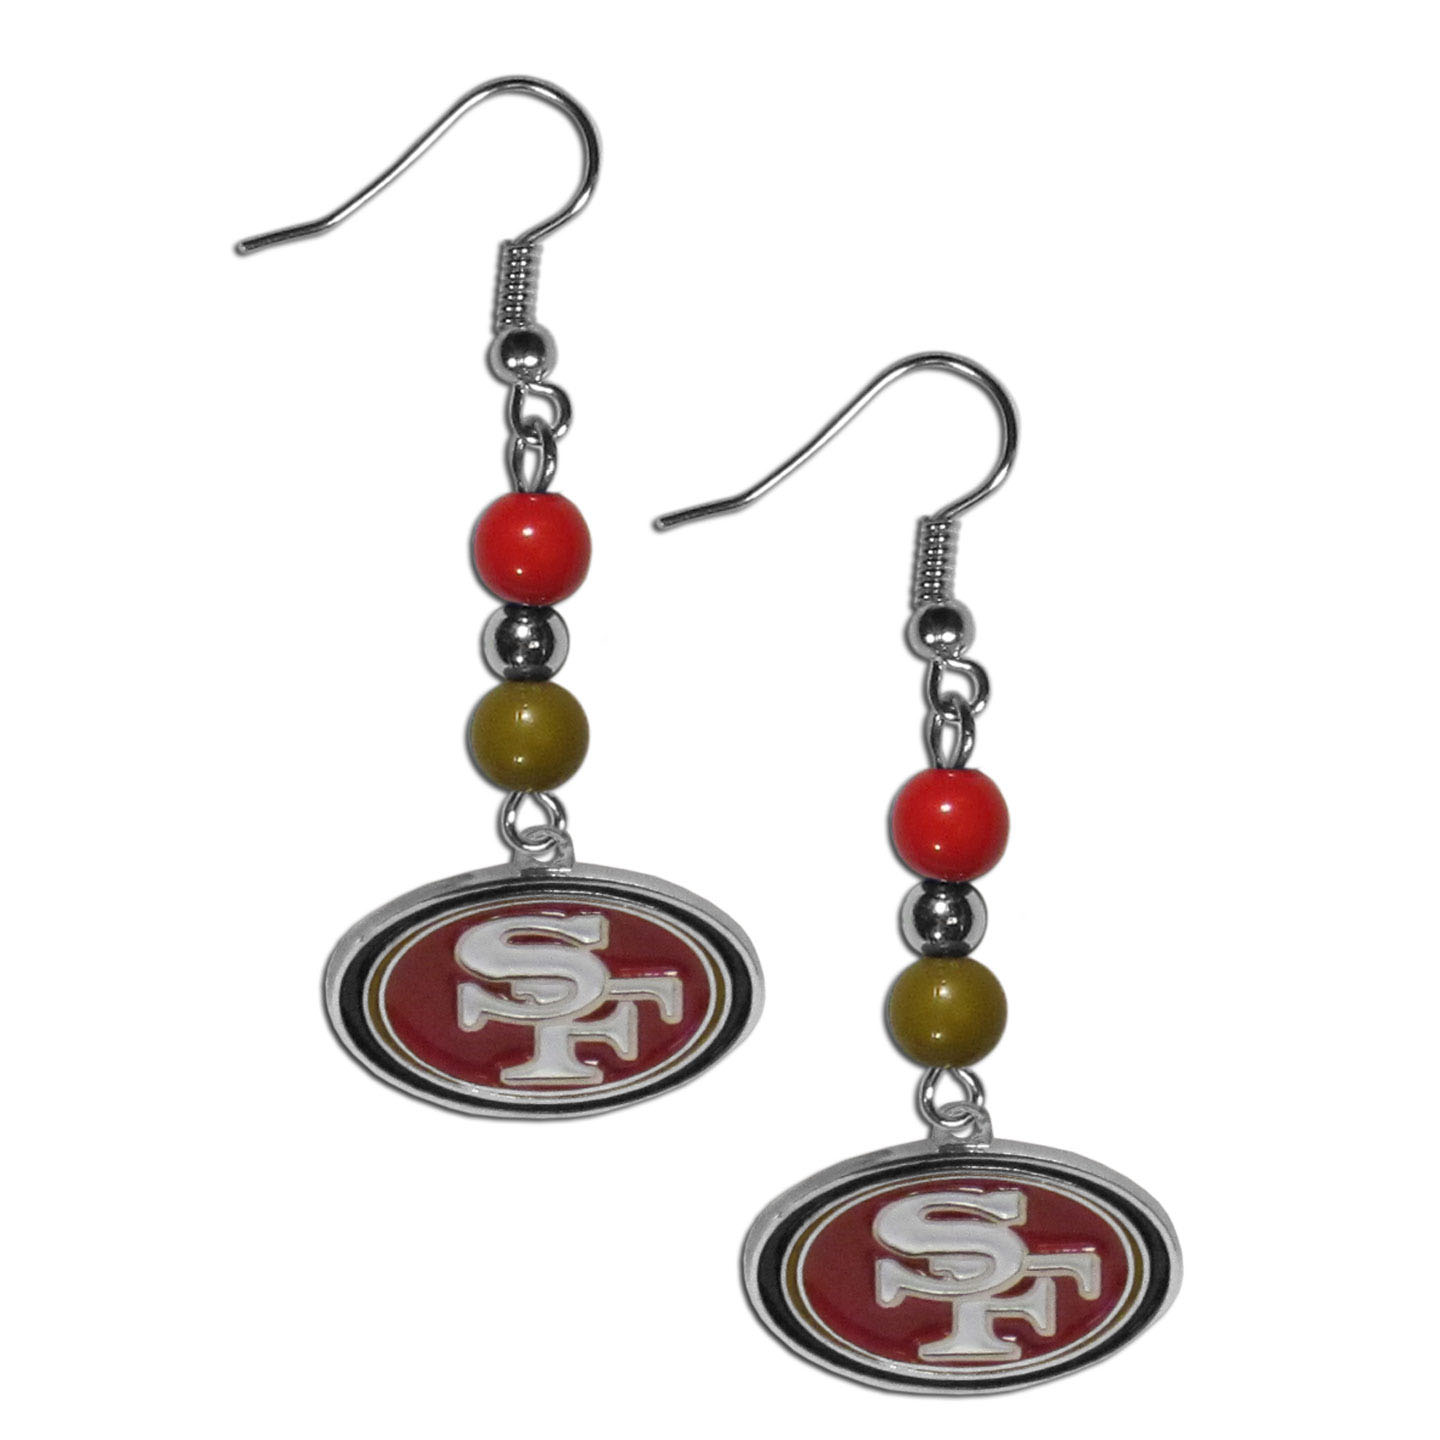 San Francisco 49ers Fan Bead Dangle Earrings - Love your team, show it off with our San Francisco 49ers bead dangle earrings! These super cute earrings hang approximately 2 inches and features 2 team colored beads and a high polish team charm. A must have for game day!